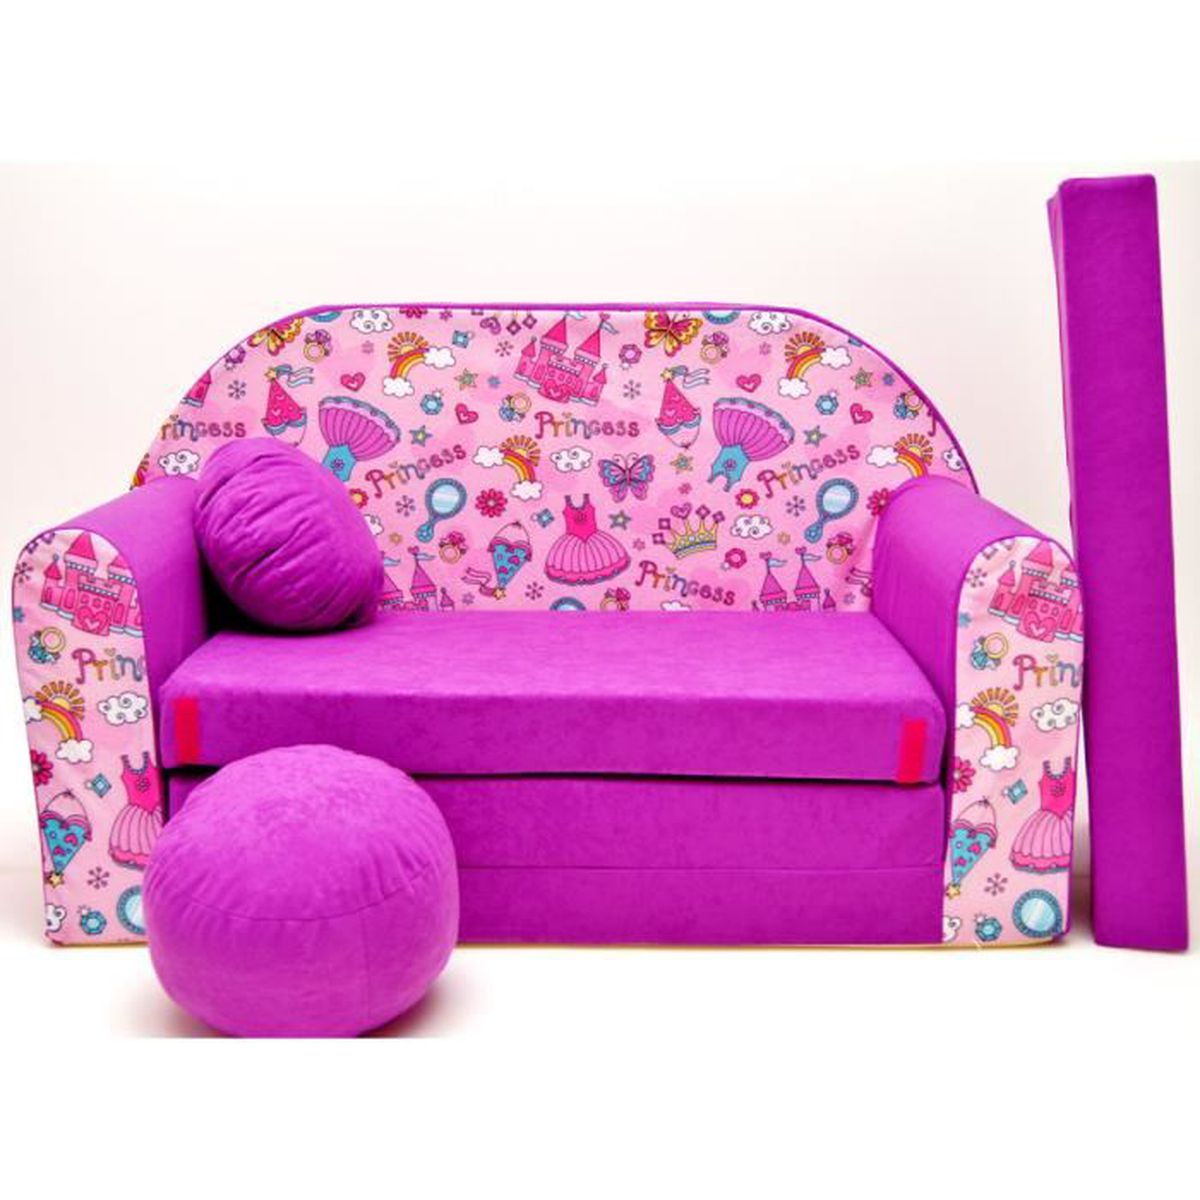 canape sofa enfant 2 places convertible princesse fuchsia achat vente fauteuil canap b b. Black Bedroom Furniture Sets. Home Design Ideas